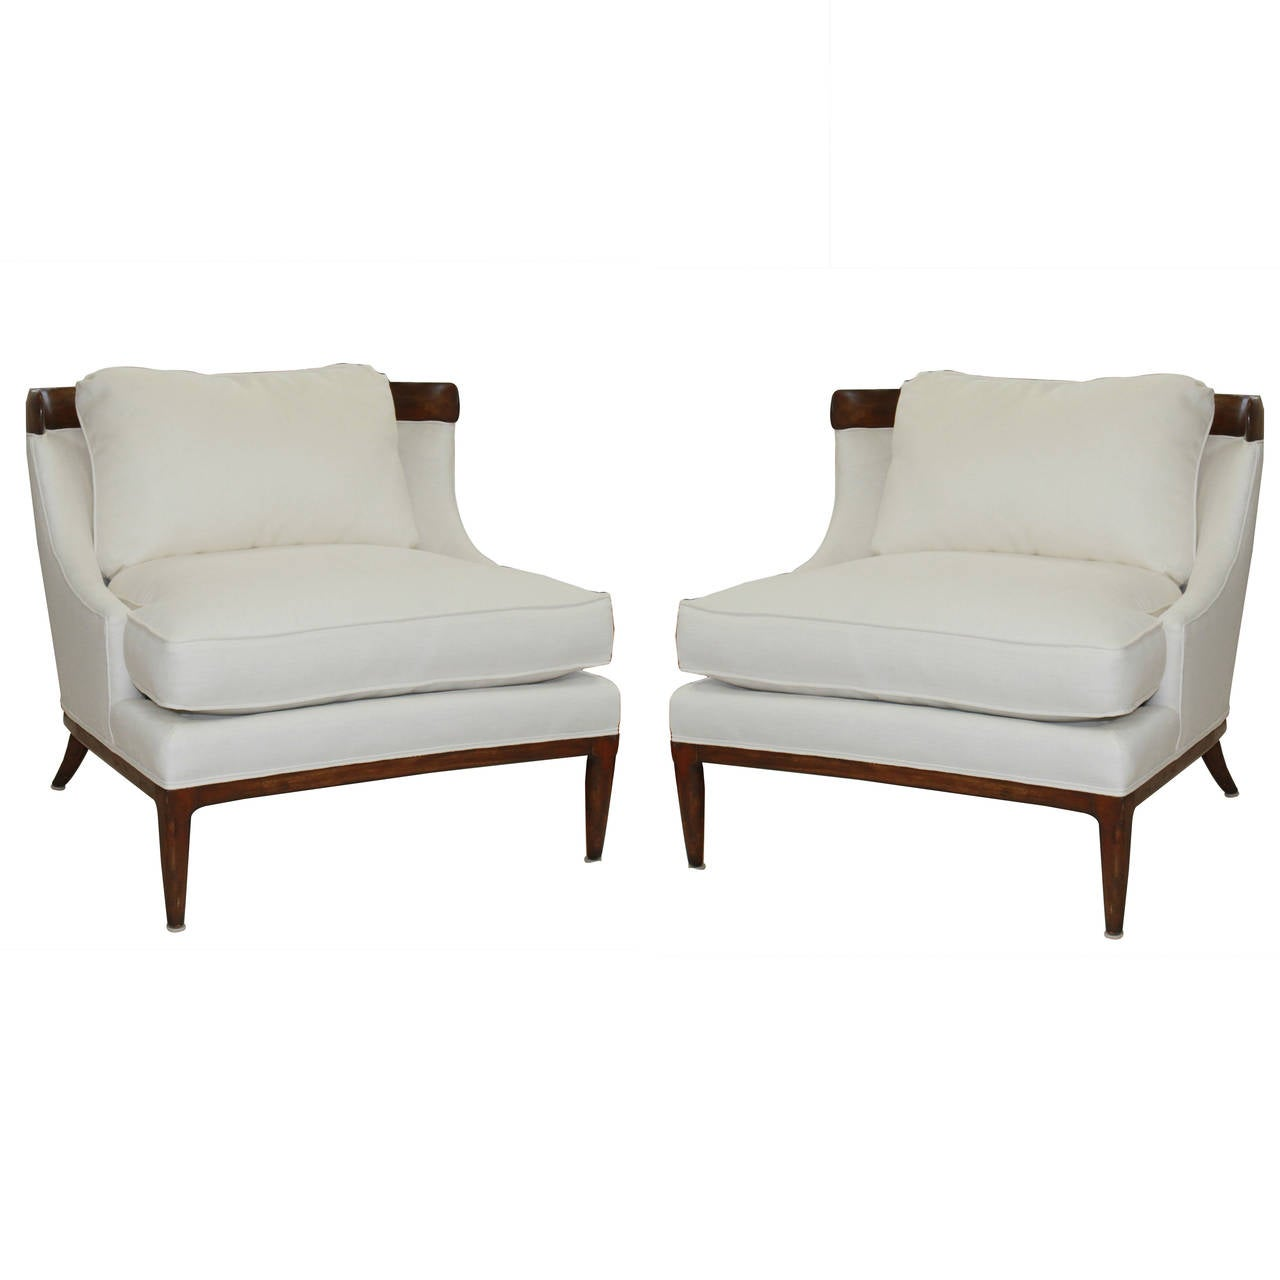 white linen chair eames dining replica erwin lambeth chairs at 1stdibs